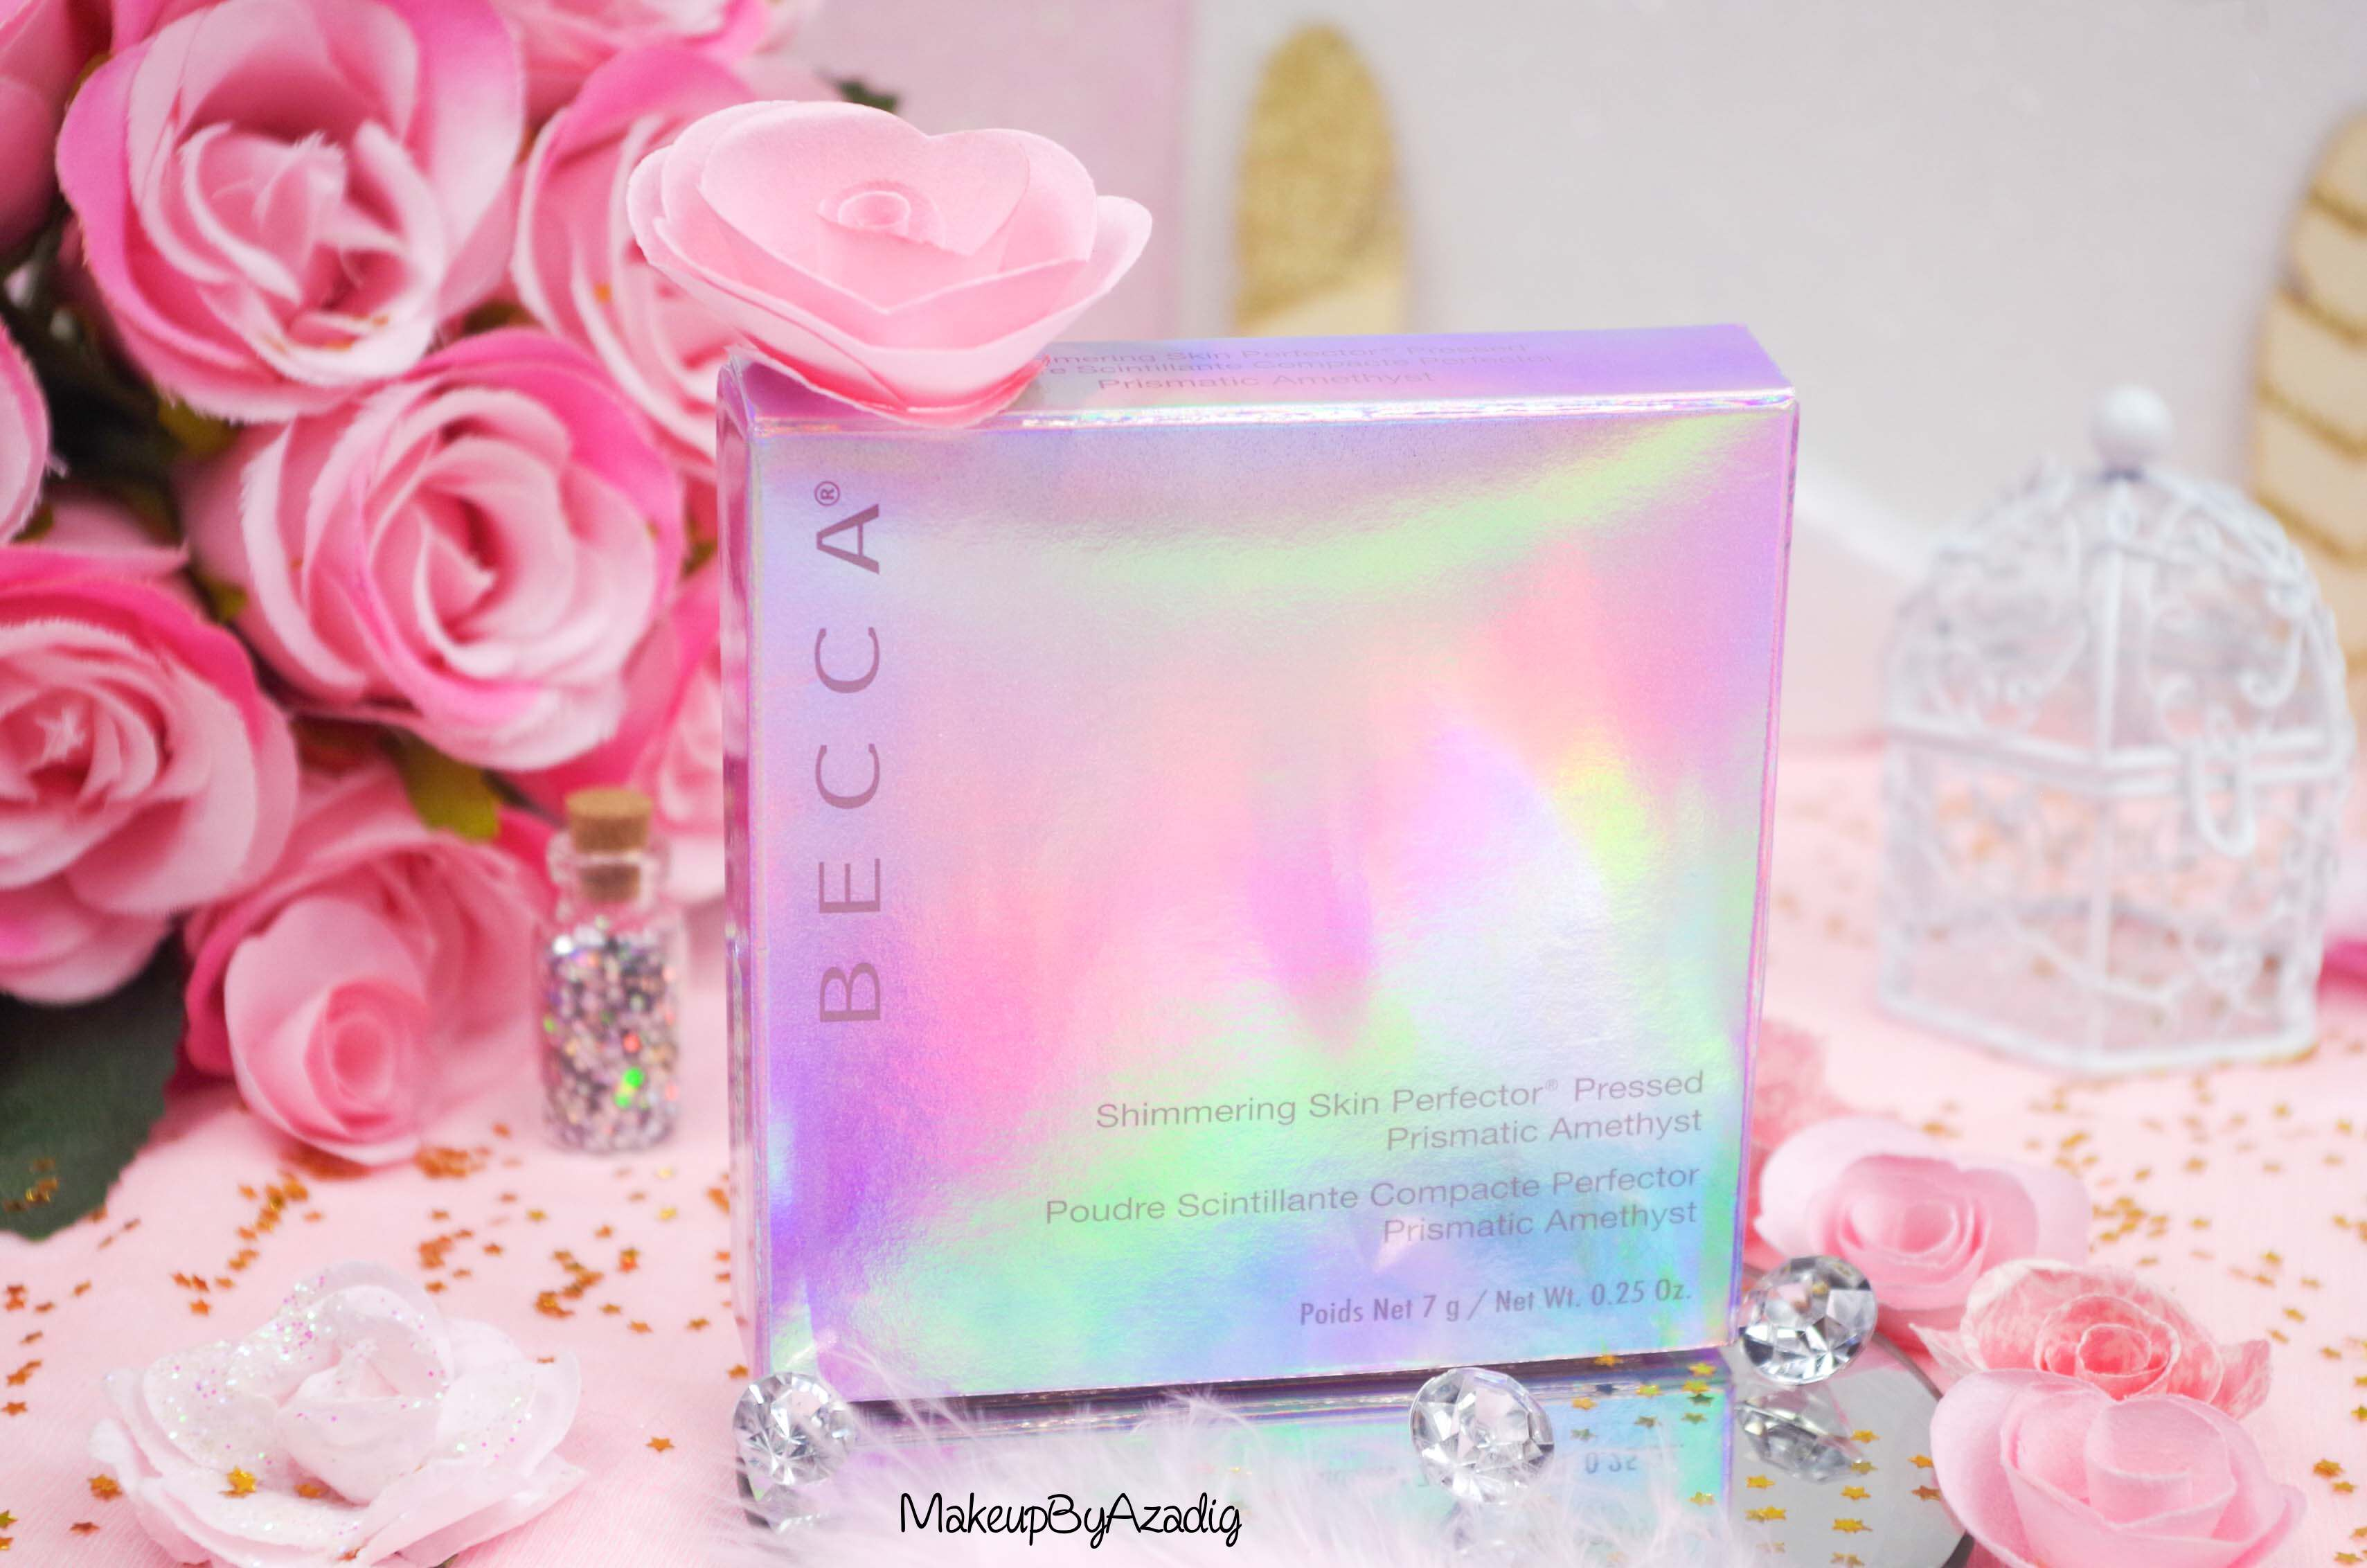 revue-becca-shimmering-skin-perfector-pressed-highlighter-enlumineur-violet-prismatic-amethyst-avis-swatch-prix-makeupbyazadig-packaging